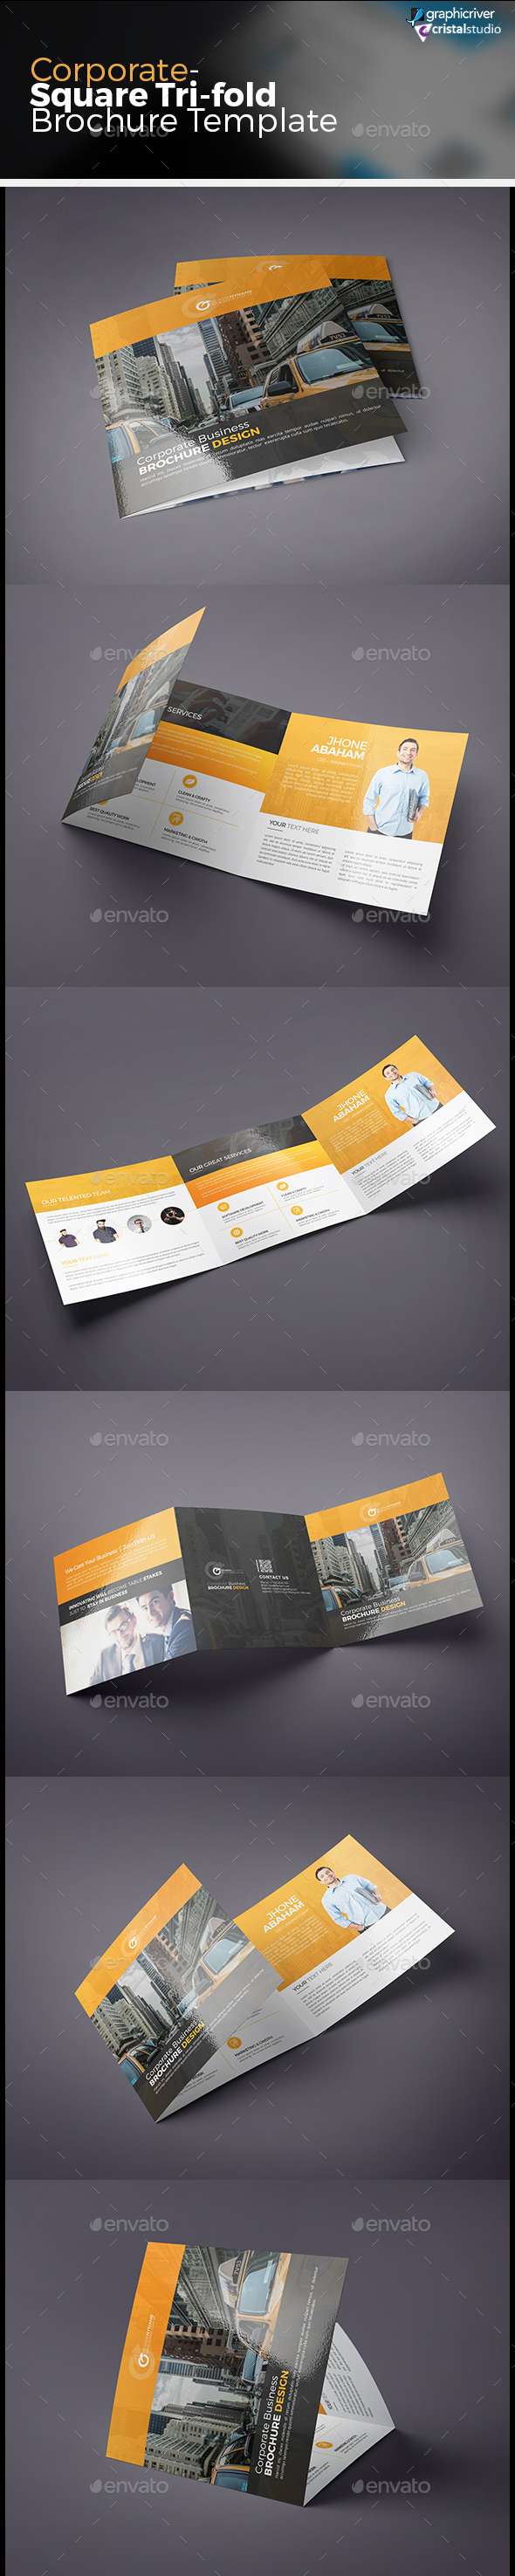 Tri-fold Square Brochure - Corporate Brochures